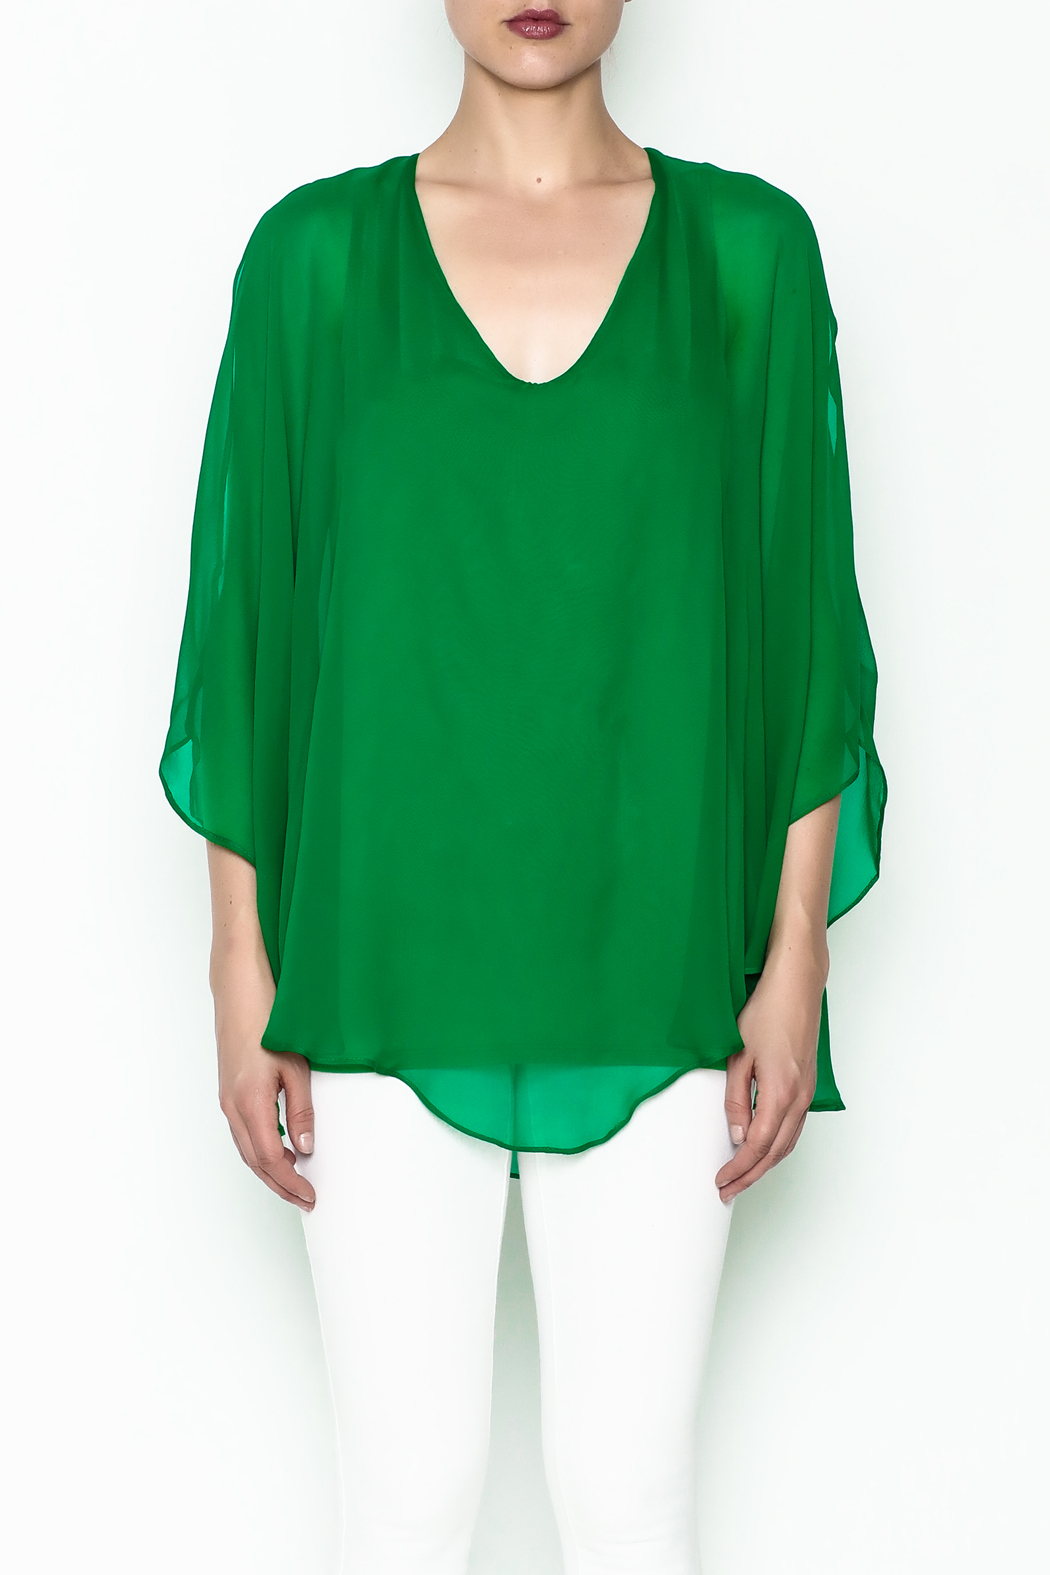 Julian Chang Sheer Overlay Blouse - Front Full Image